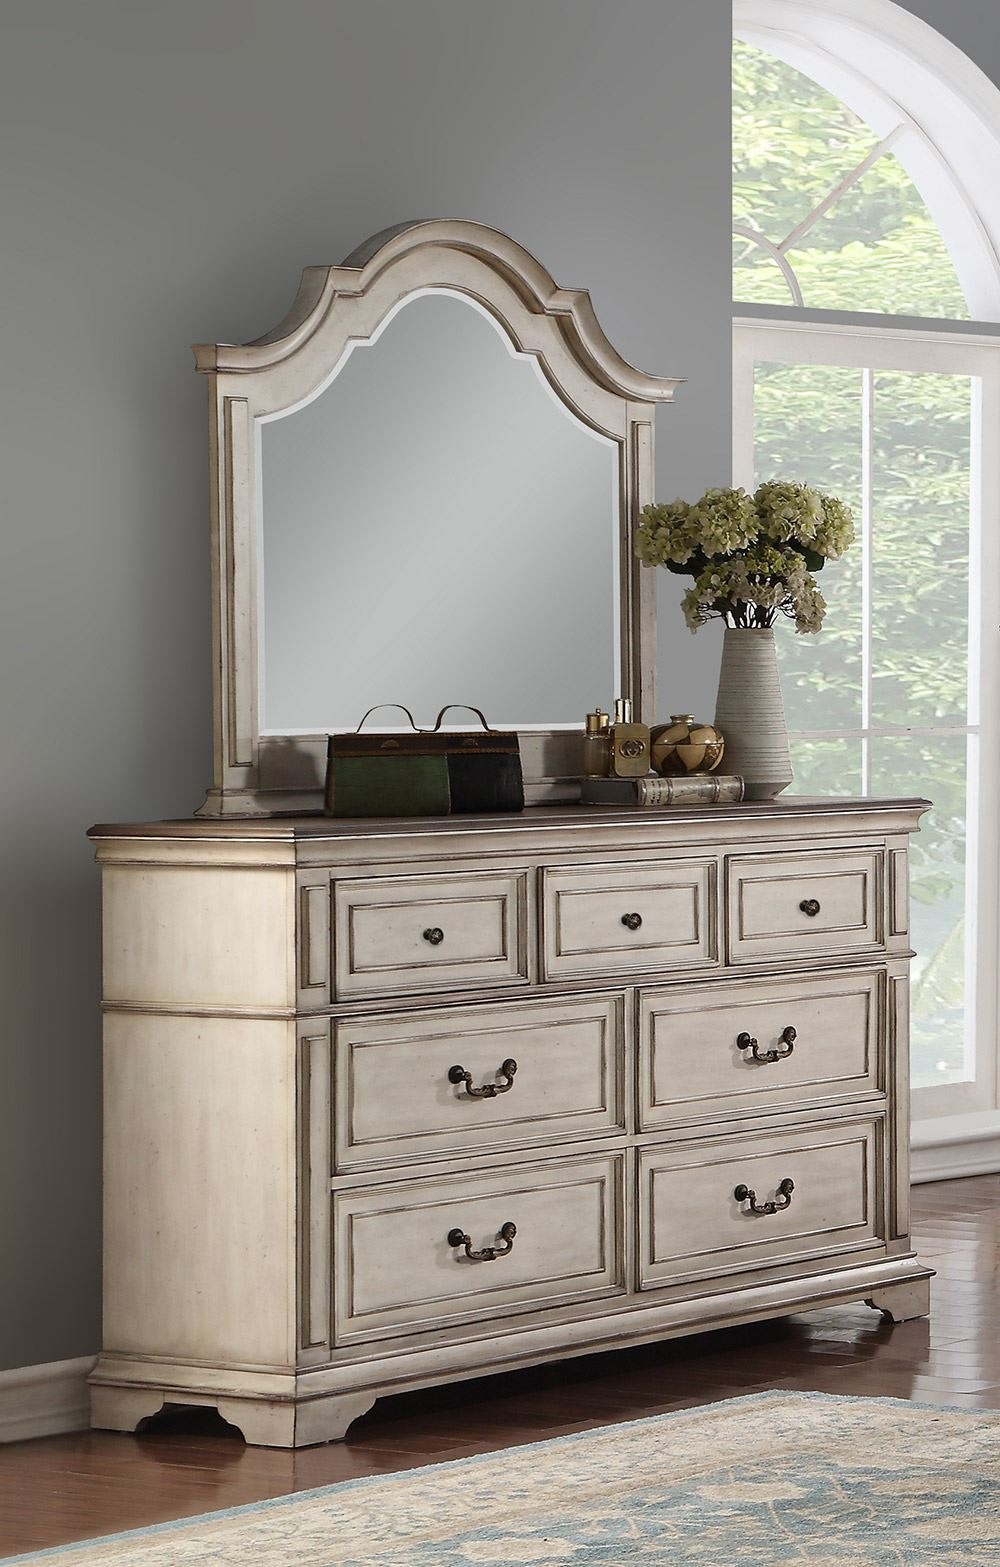 Roadside Restyle Classic French Dresser Salvaged Inspirations Antique White Furniture Antique White Bedroom Furniture White Painted Furniture [ 1530 x 1024 Pixel ]